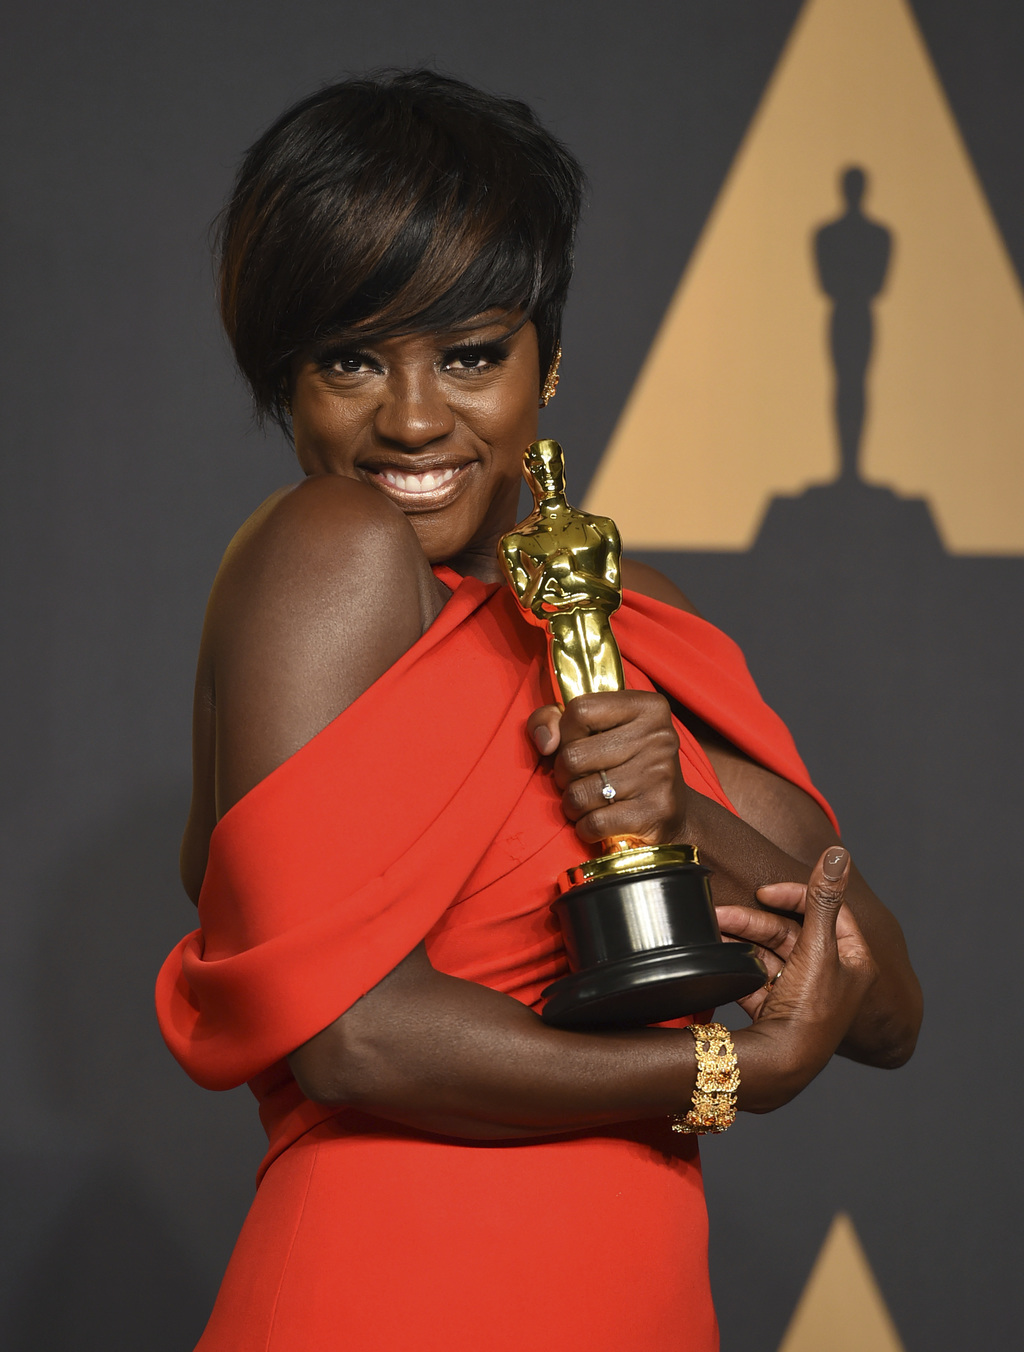 FILE - In this Feb. 26, 2017 file photo, Viola Davis poses in the press room at the Oscars at the Dolby Theatre in Los Angeles. Davis w...